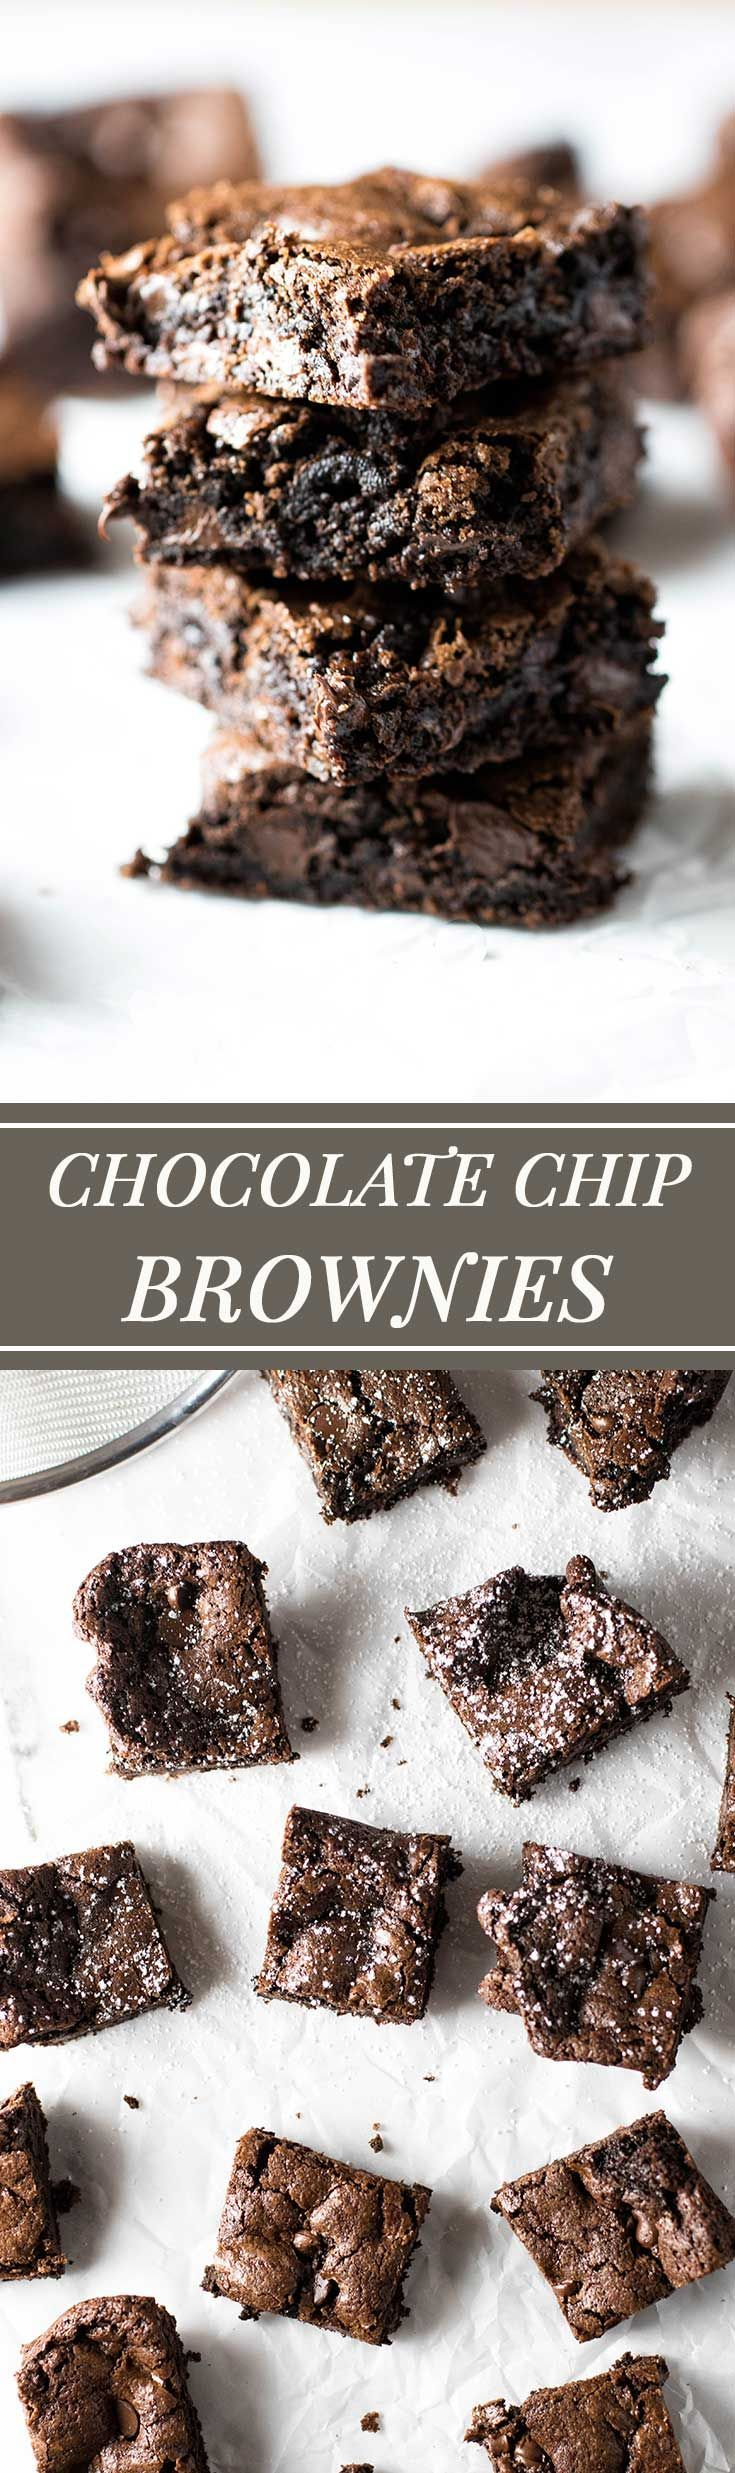 511 best images about Best Chocolate Desserts on Pinterest ...